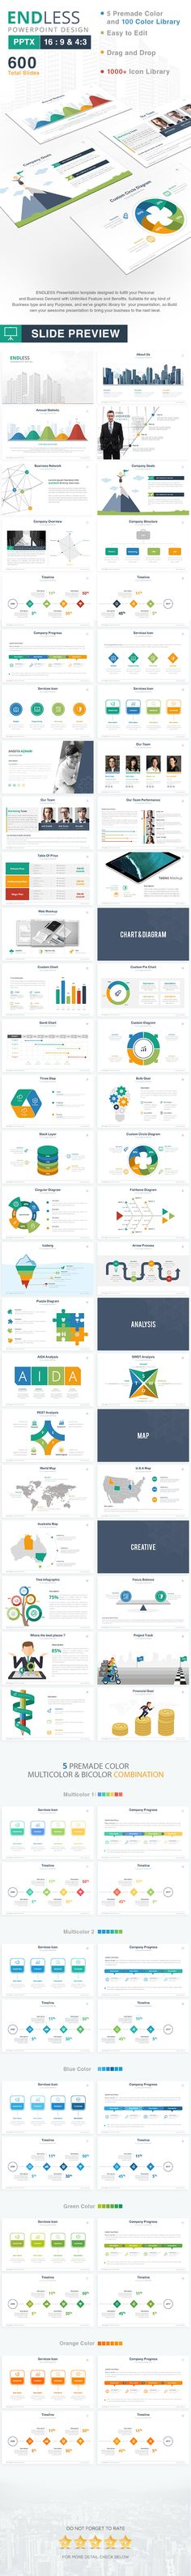 Endless Powerpoint Template Design, make a great presentation and amaze your audience with this template!